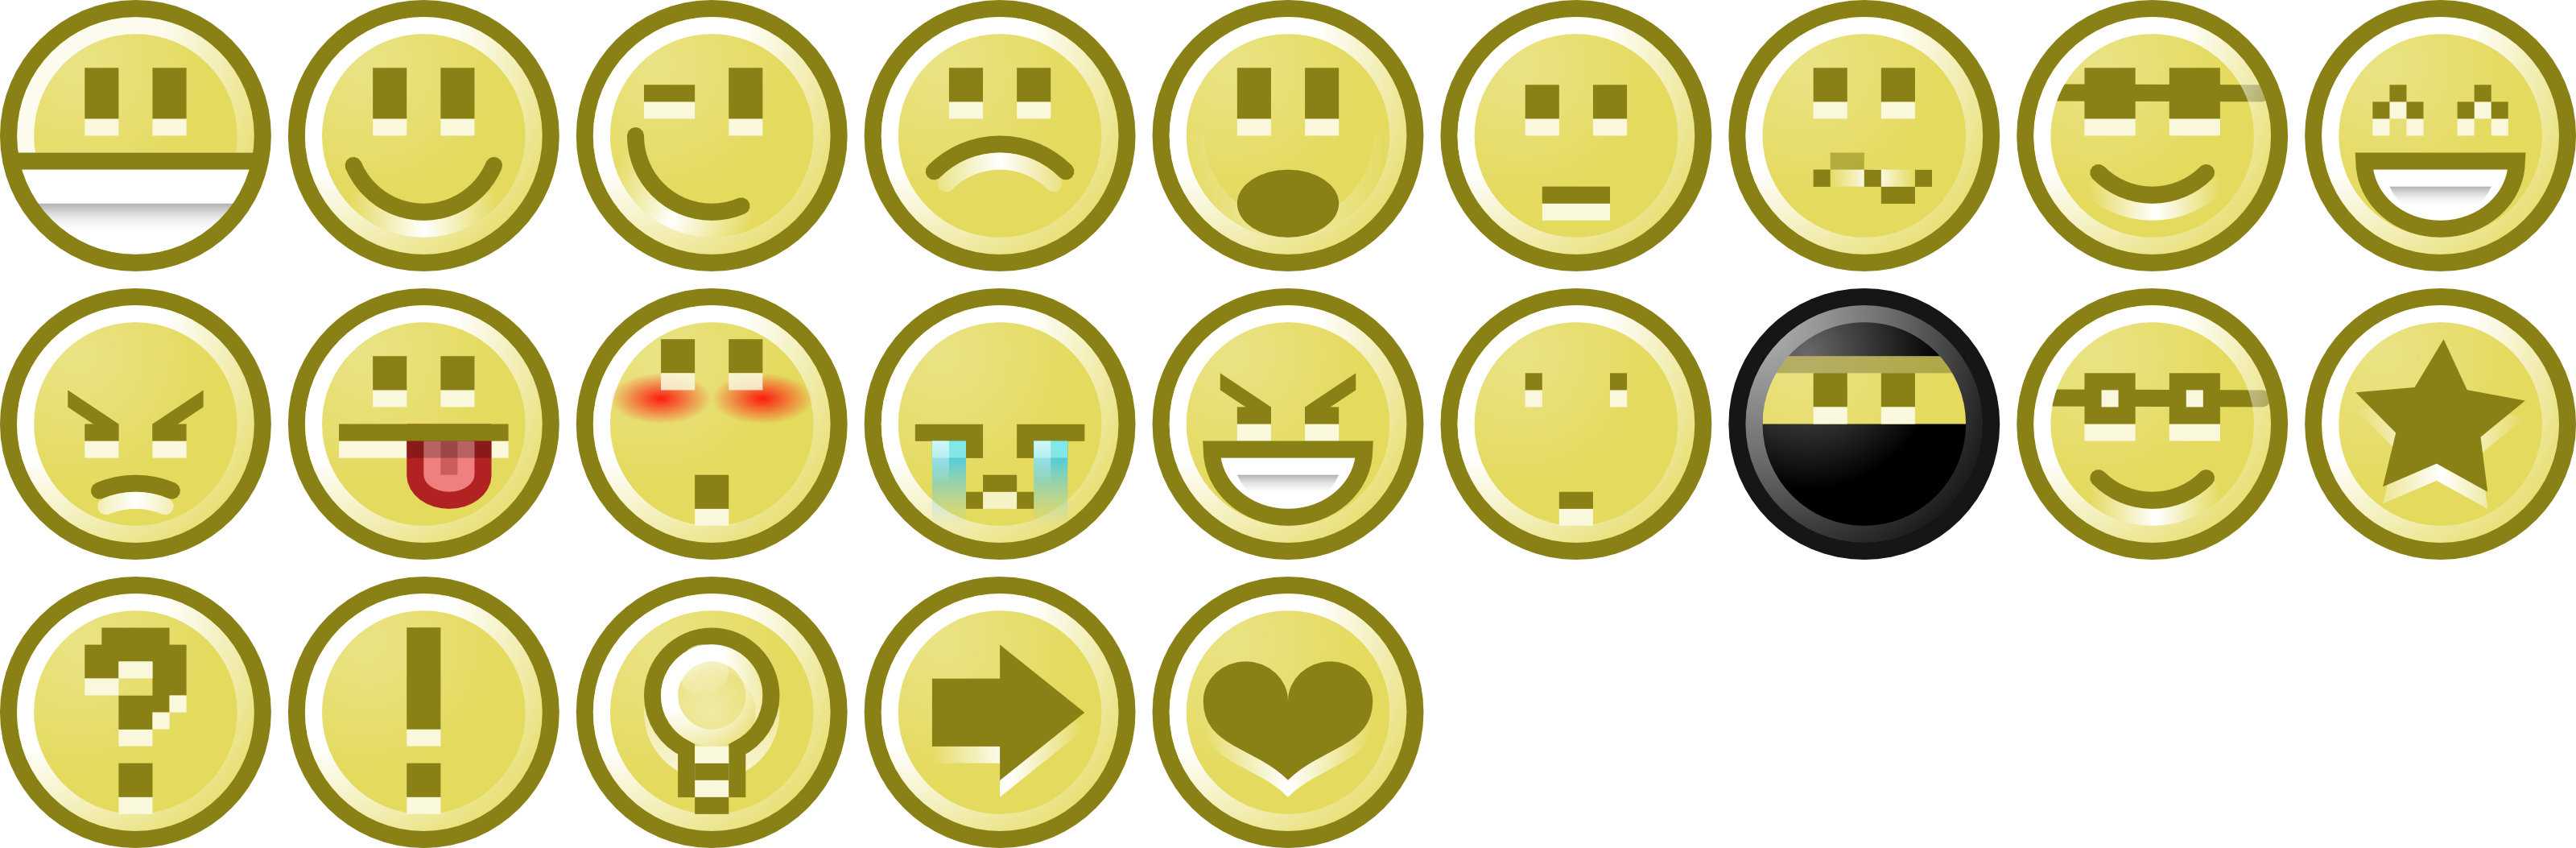 Free Vector Series Of Forum Smileys and Icons